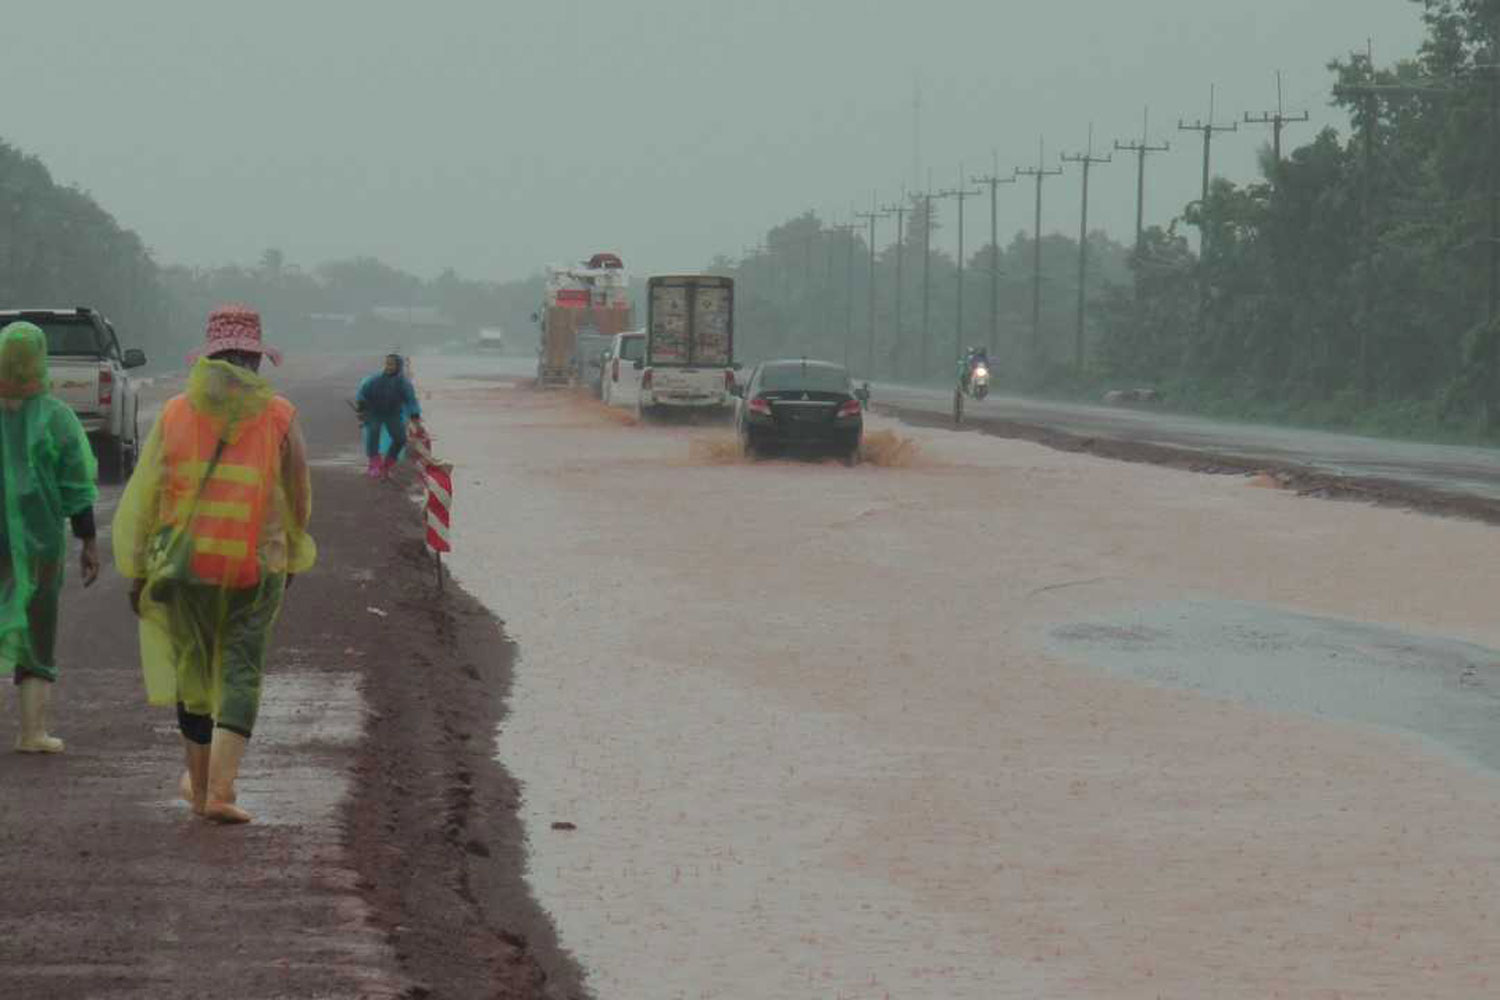 Flooding further hinders vehicles as they pass roadworks on a highway in Pla Pak district of Nakhon Phanom province on Wednesday. (Photo by Pattanapong Sripiachai)